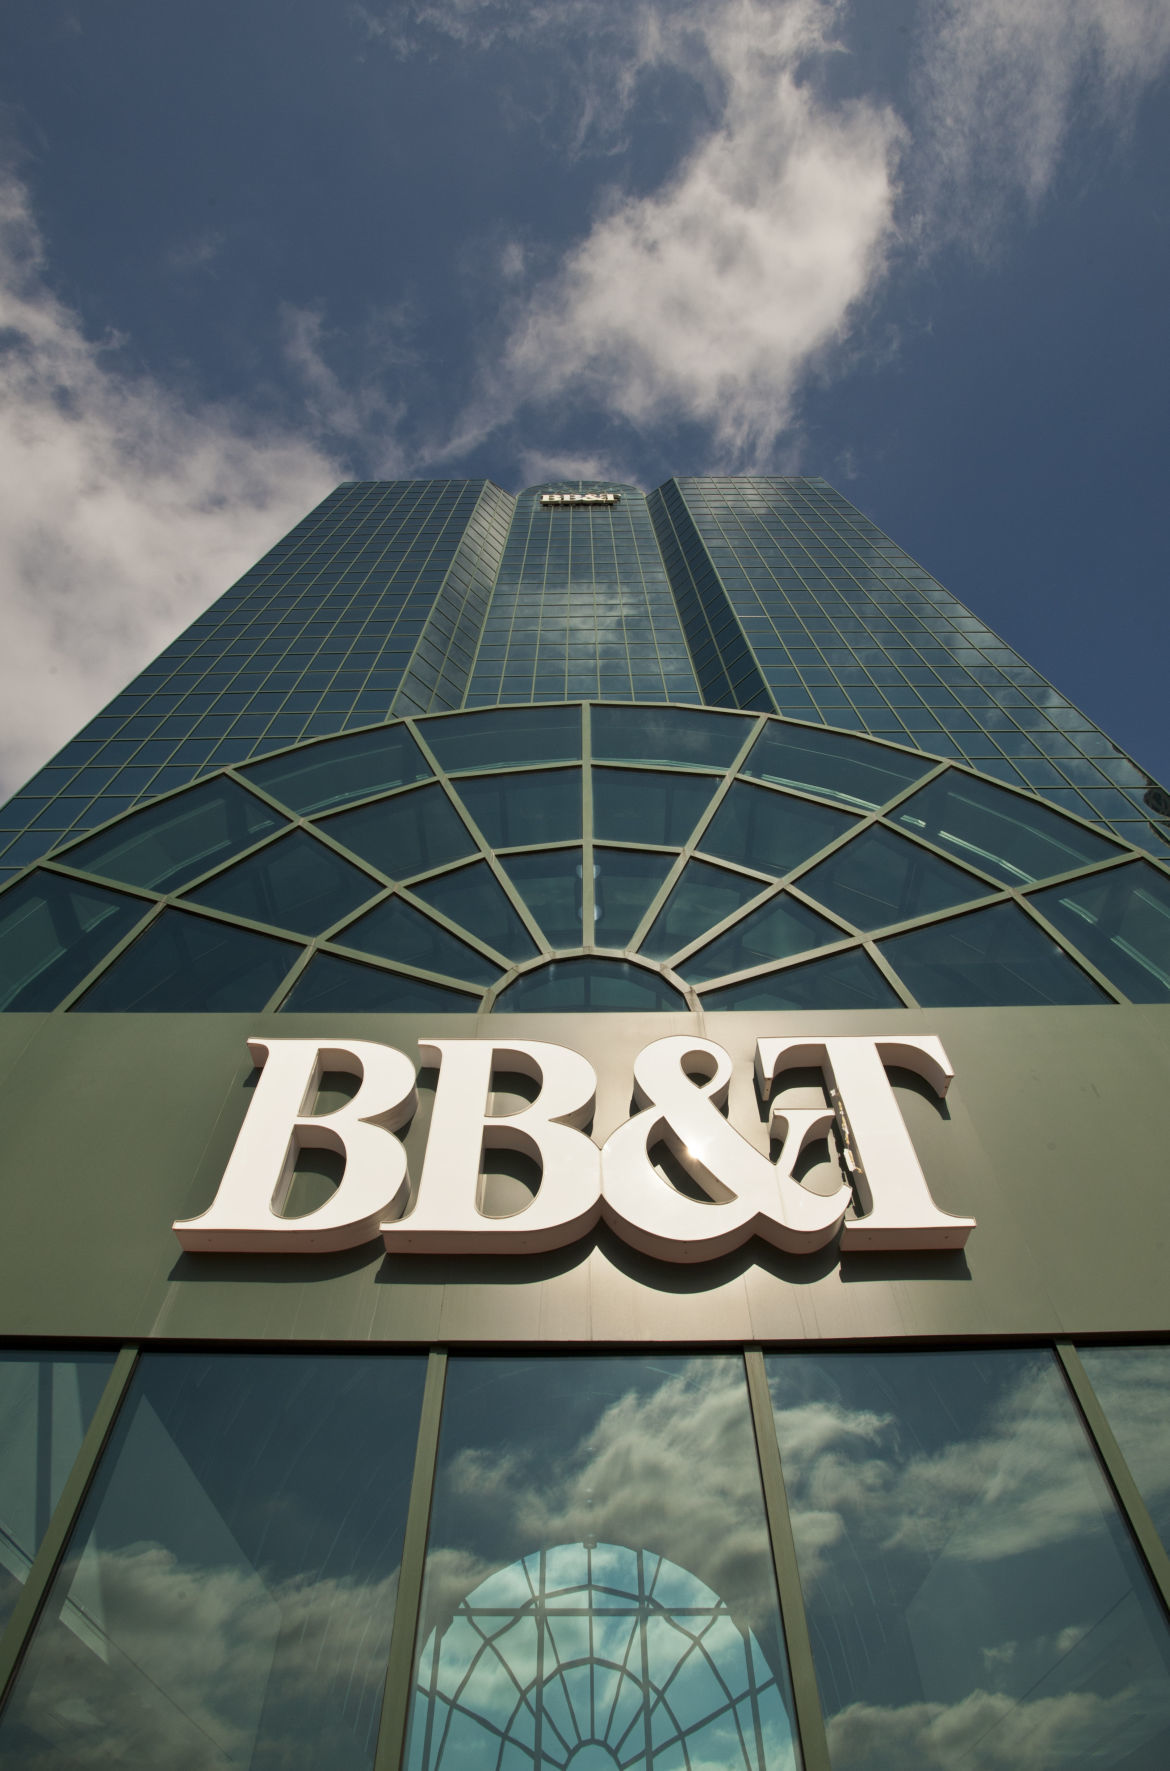 BB&T headquarters move to Charlotte stings but silver lining